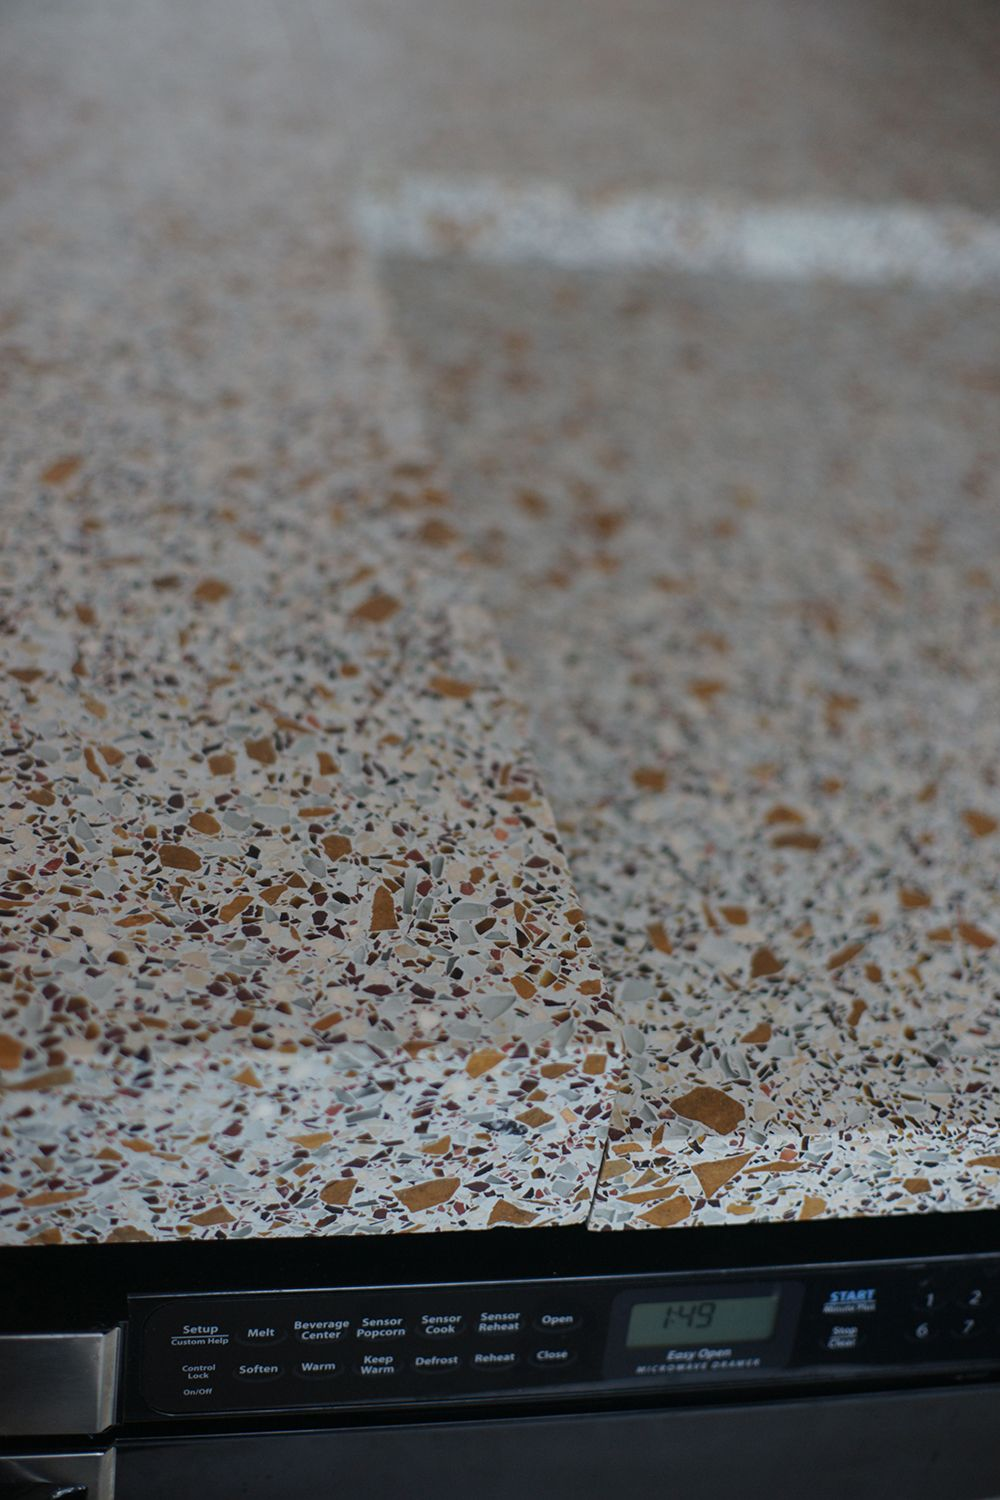 Superieur Concord Terrazzo Countertops Are A Great Way To Provide An Unique And  Customized Hard Surface Finish Option For Your Residential Or Commercial  Project.